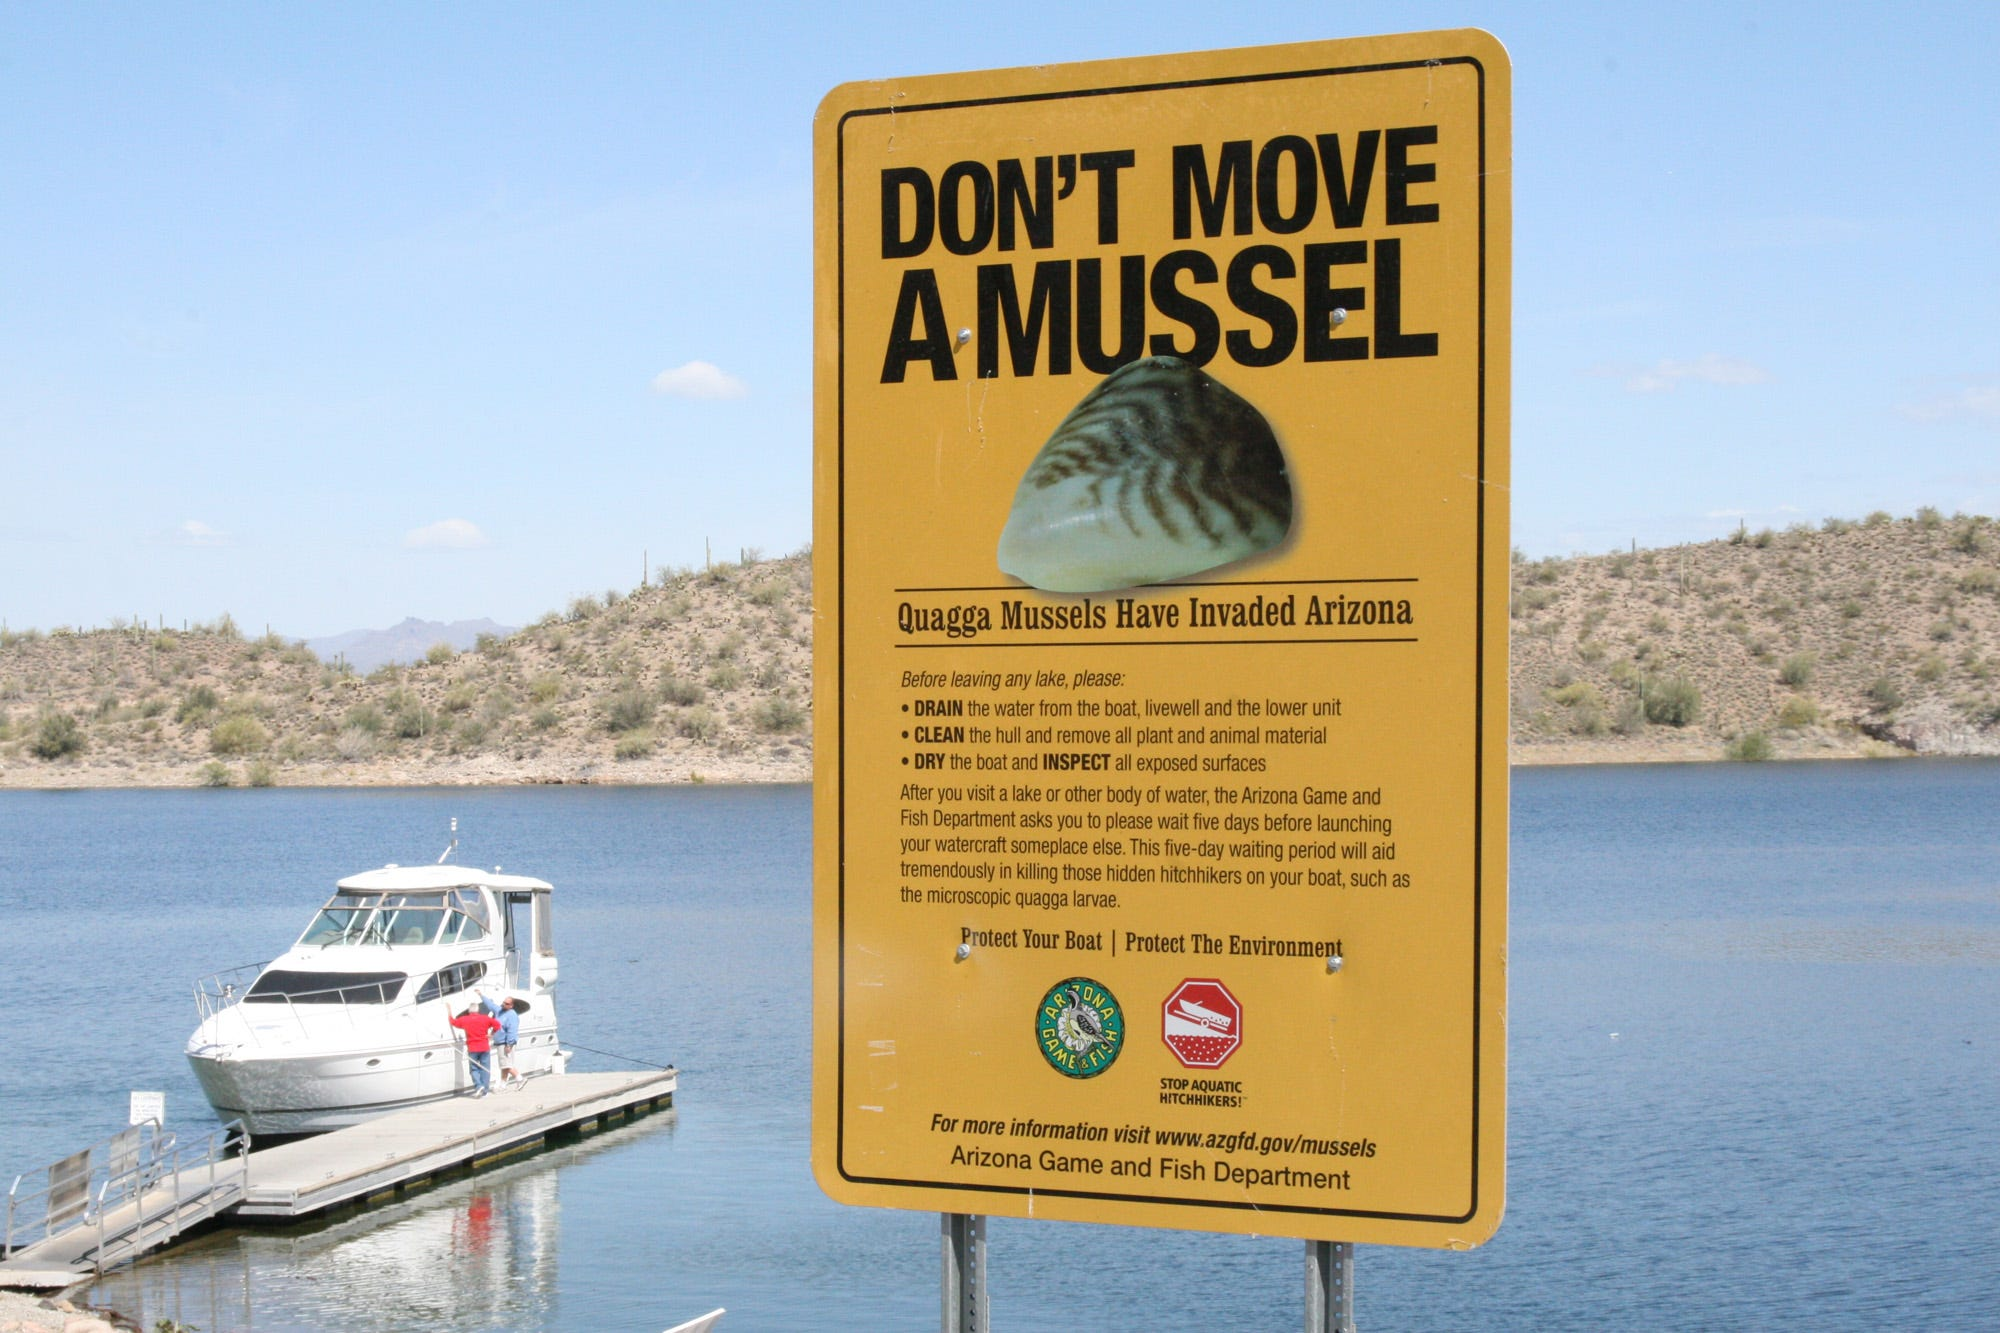 A sign at Lake Pleasant urges boaters to take precautions to avoid transporting destructive quagga mussels.